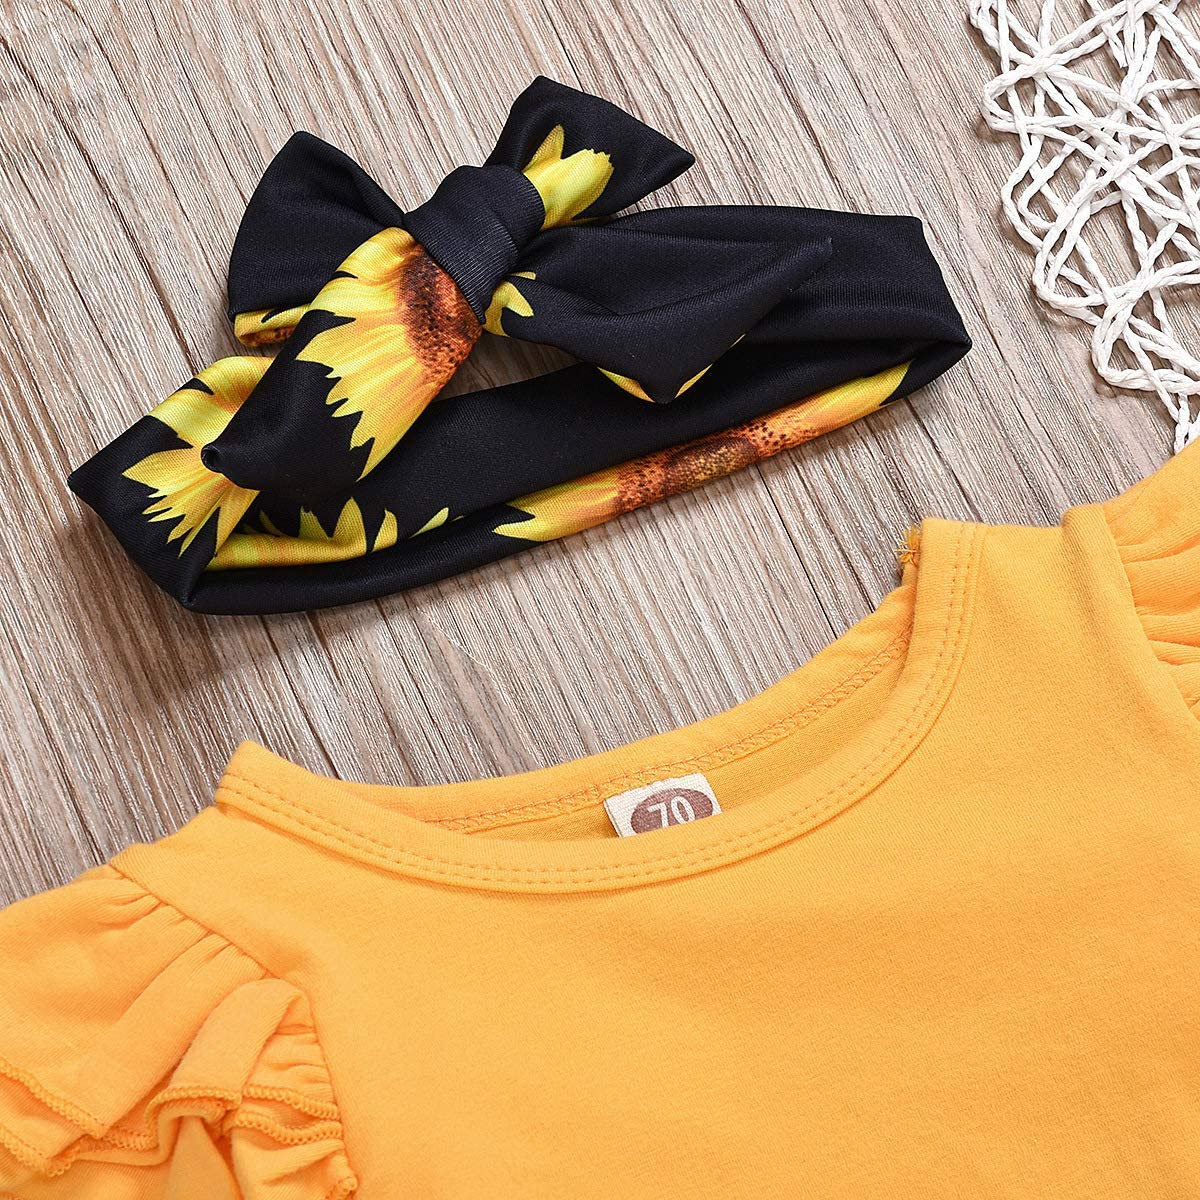 Floral Trouser Sunflower Headband Set Infant Toddler Fashion Cotton Clothes for 0-24 Months Ciujoy Baby Girls Outfits 3 Pieces Long Sleeve Romper